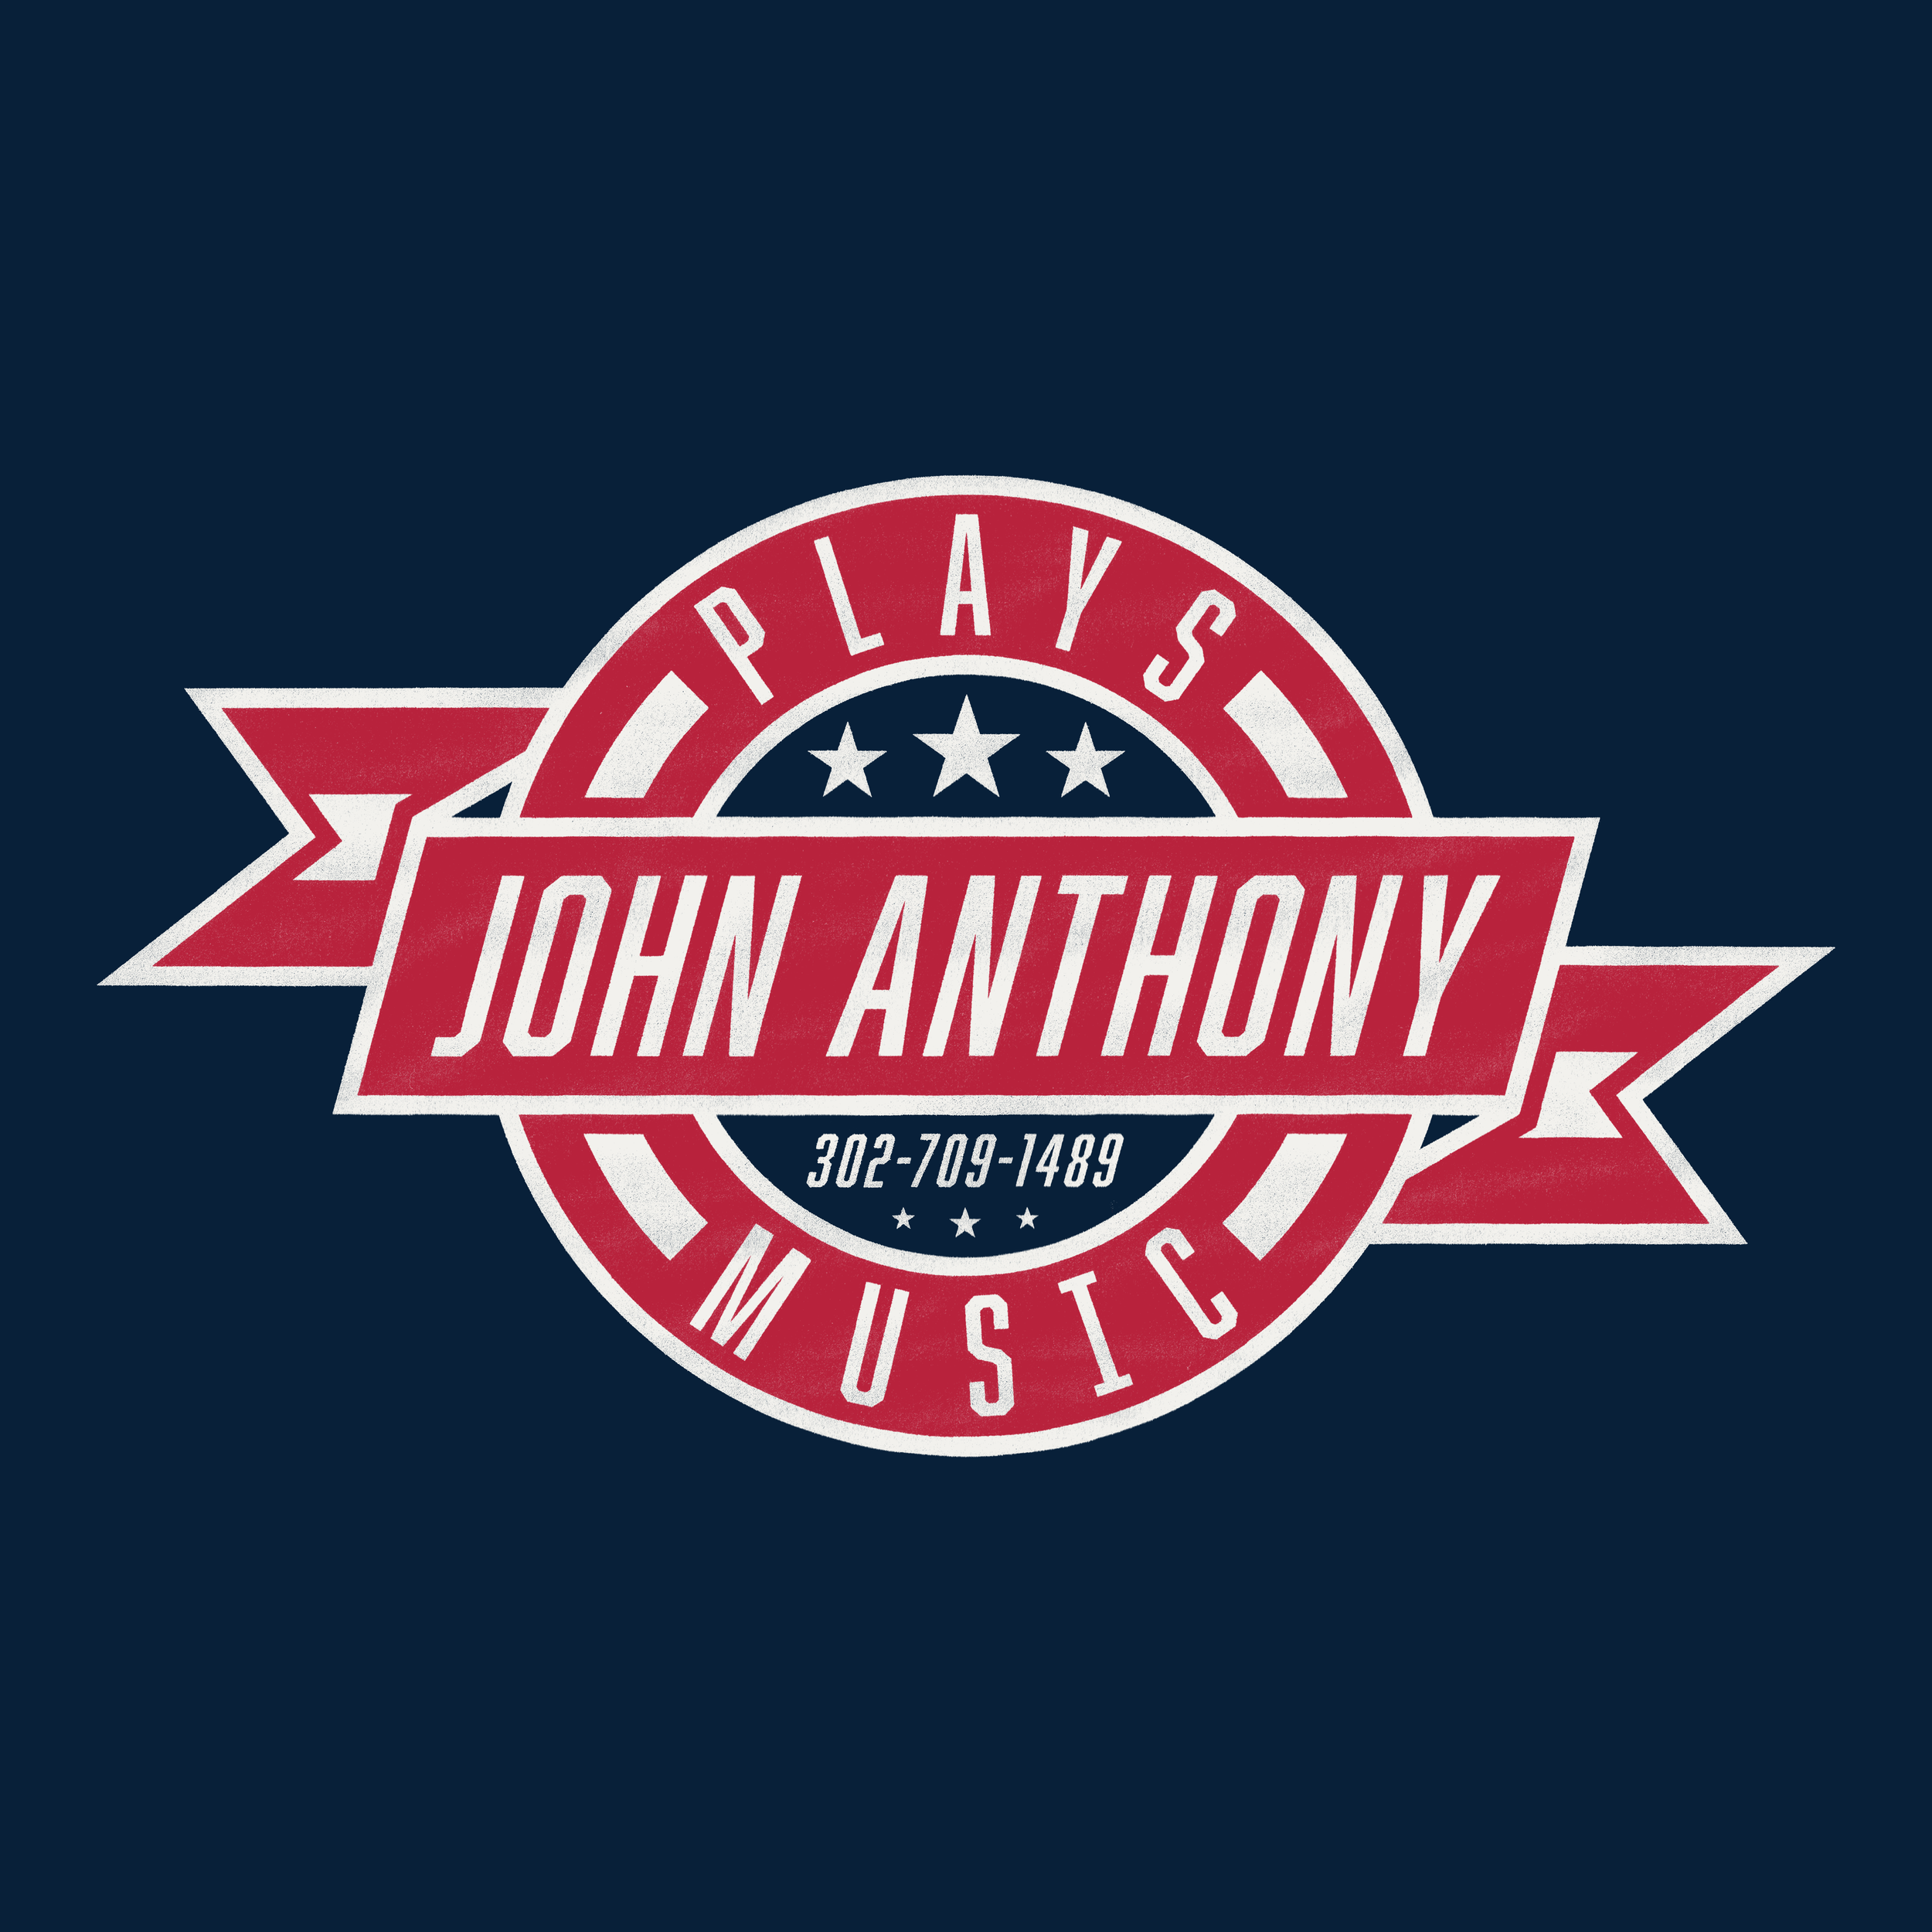 John Anthony Plays Music - Emblem Logo Designveteran owned entertainment Companyspecializing in performances for retirees